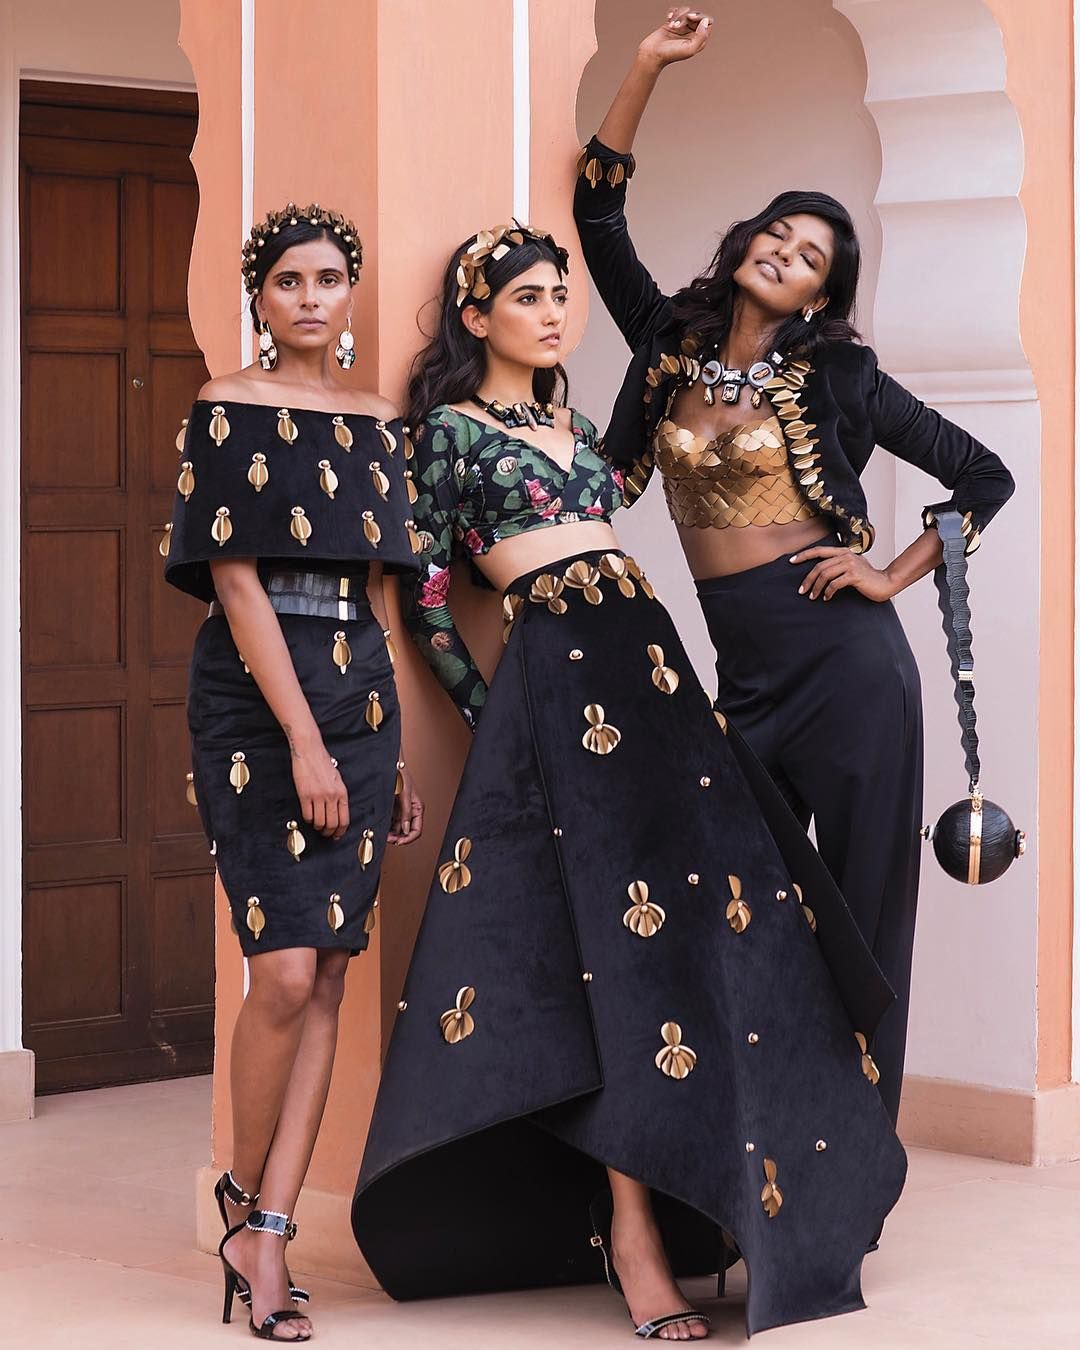 Ogaan India On Instagram Shivan Narresh Ogaan Hyderabad Join Us Tomorrow As We Unveil Our Favourite Res Indian Outfits Western Wear Dresses Asian Fashion